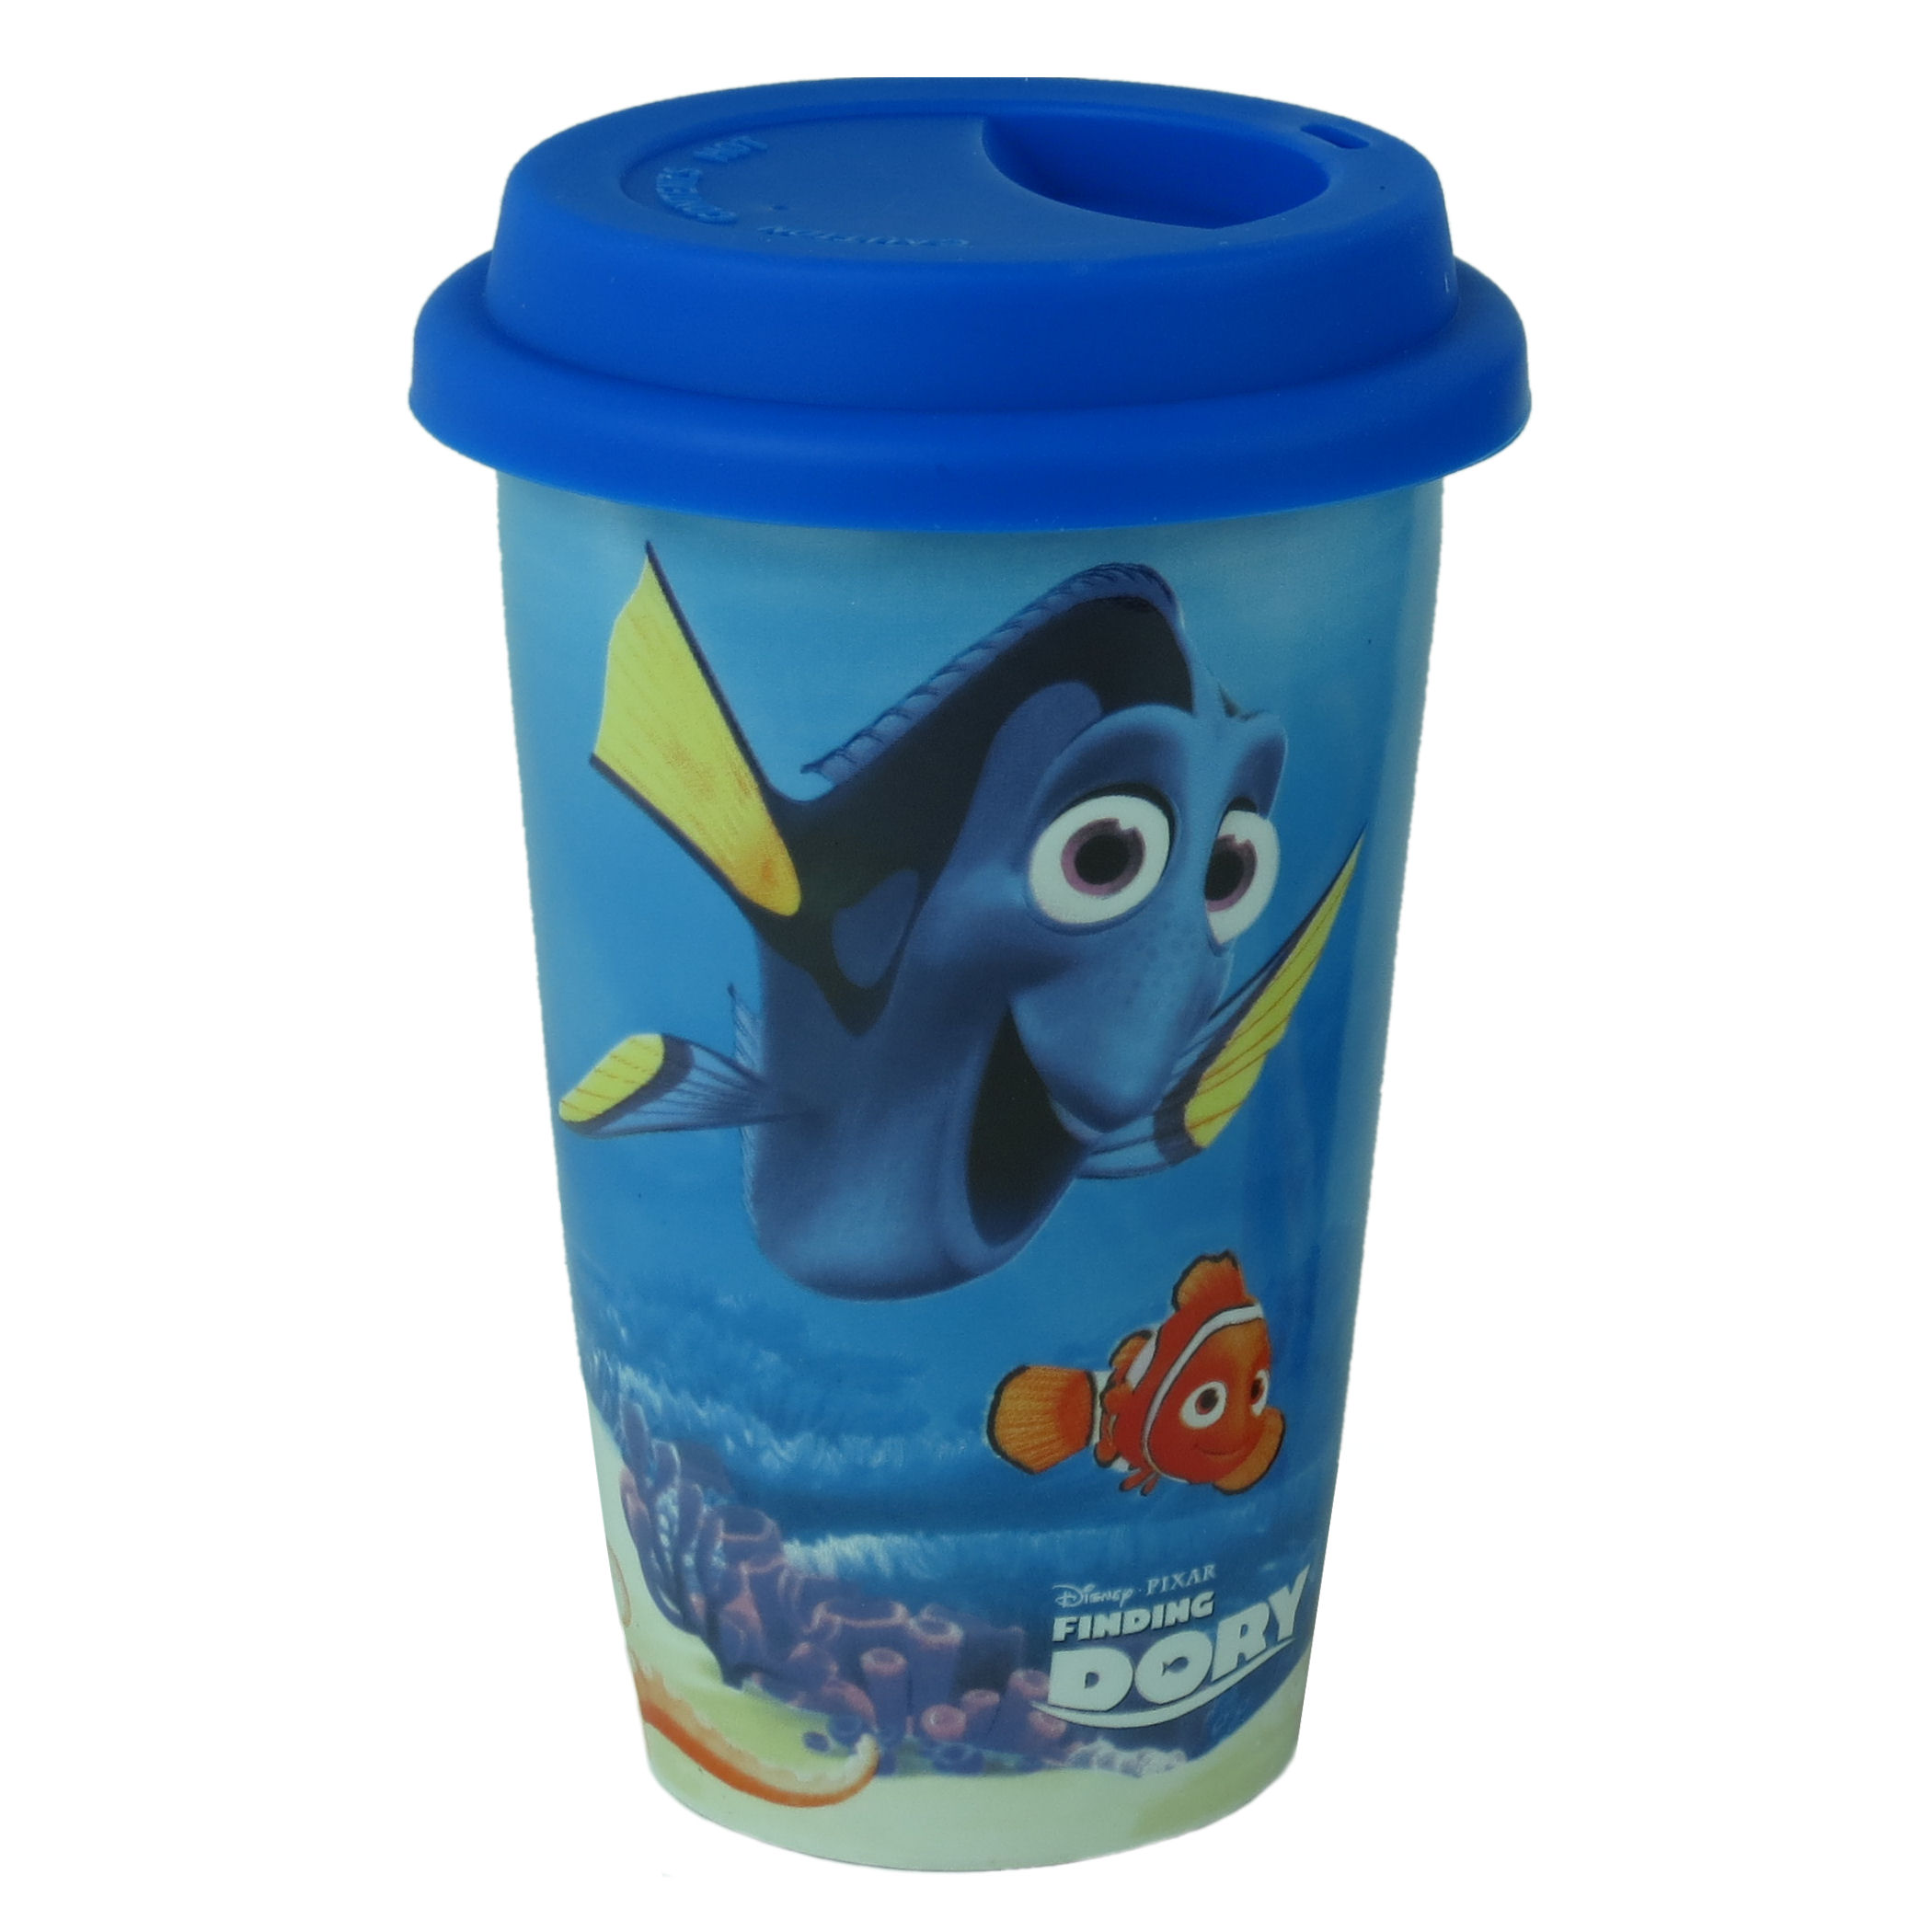 Finding Dory Characters Travel Mug